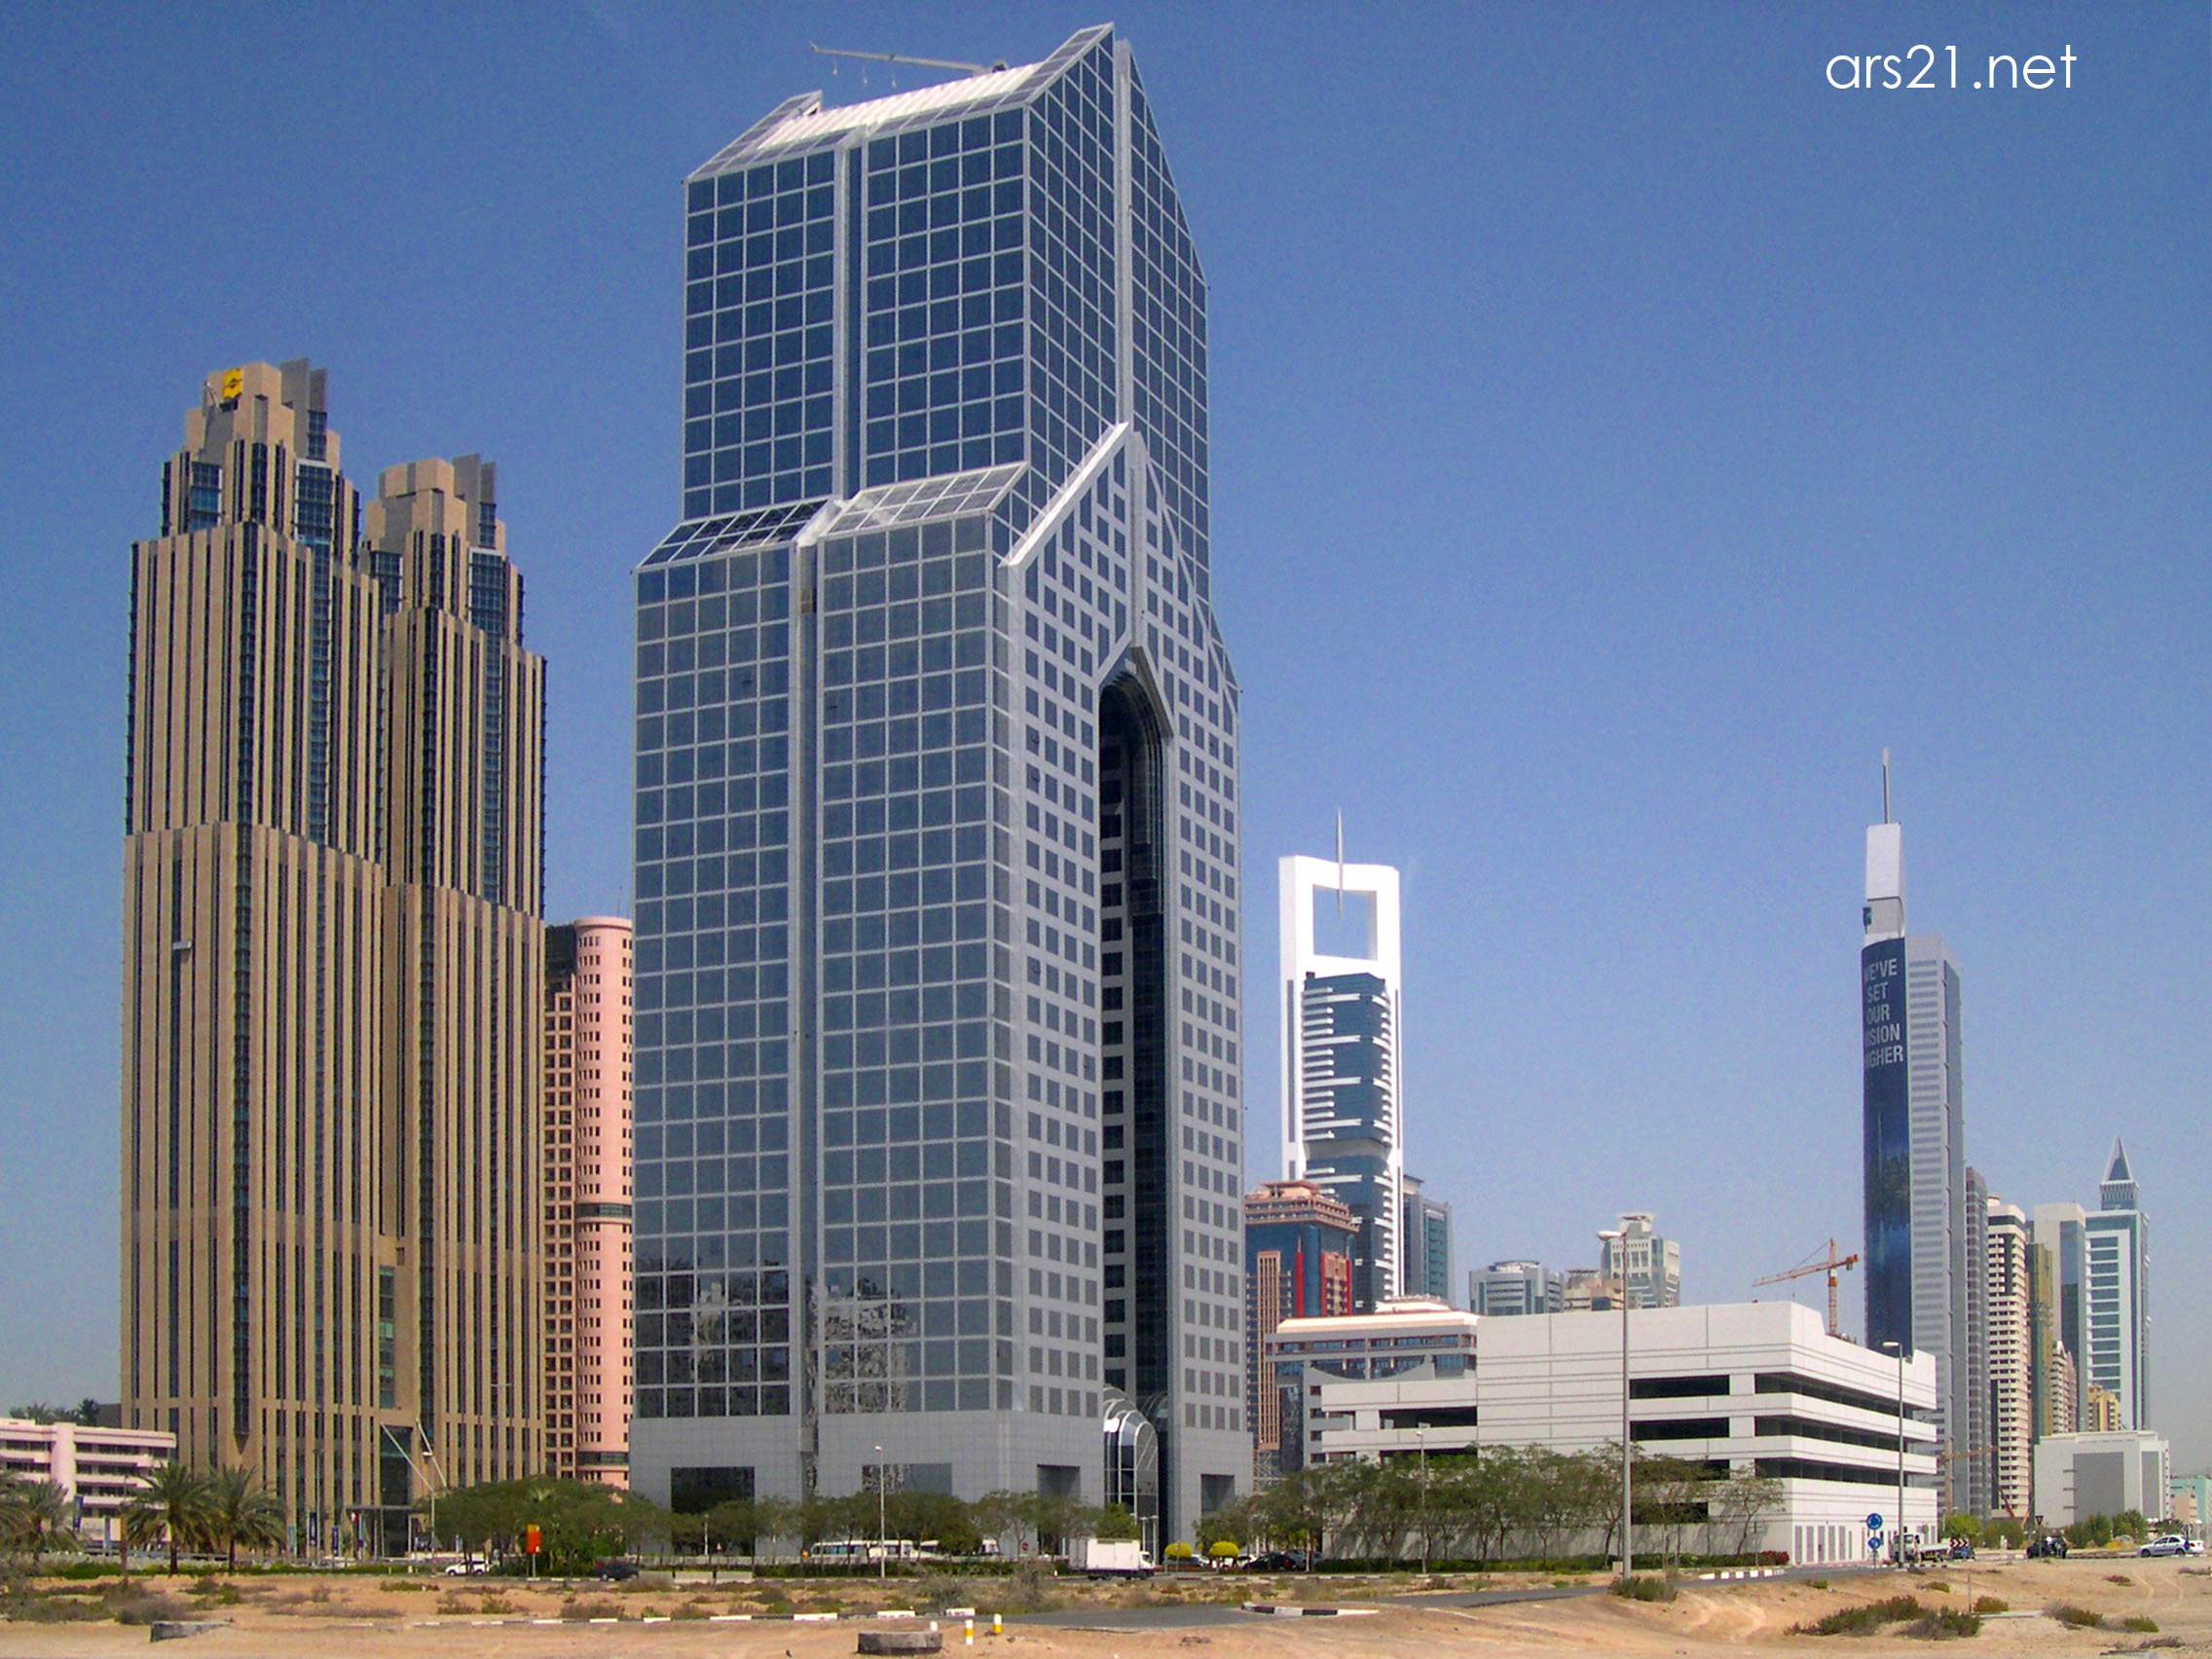 Famous buildings of the world: 12/01/2009 - 01/01/2010